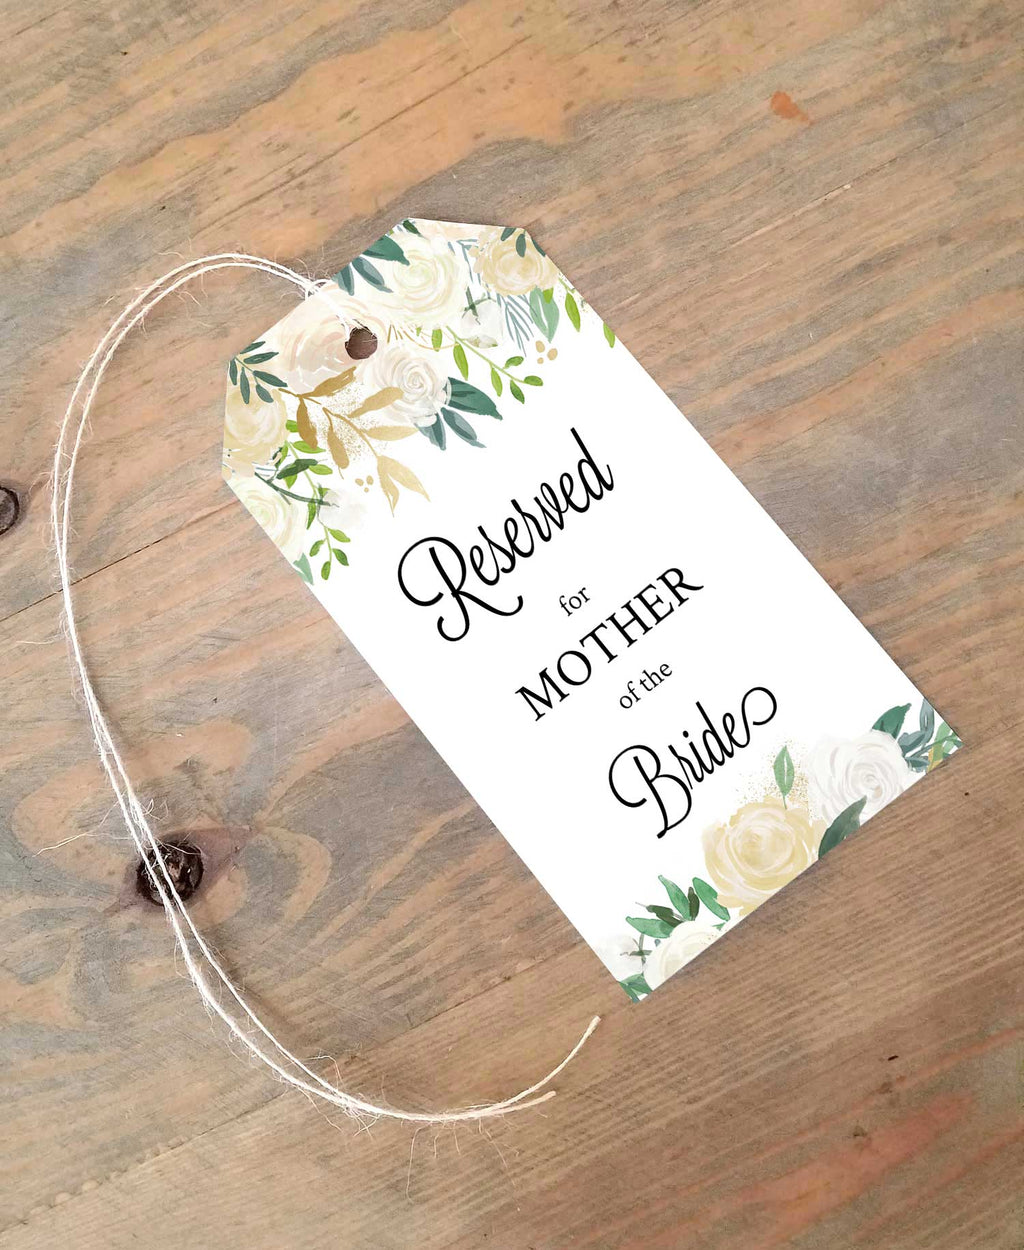 Creamy White Flowers Reserved Seating Tags